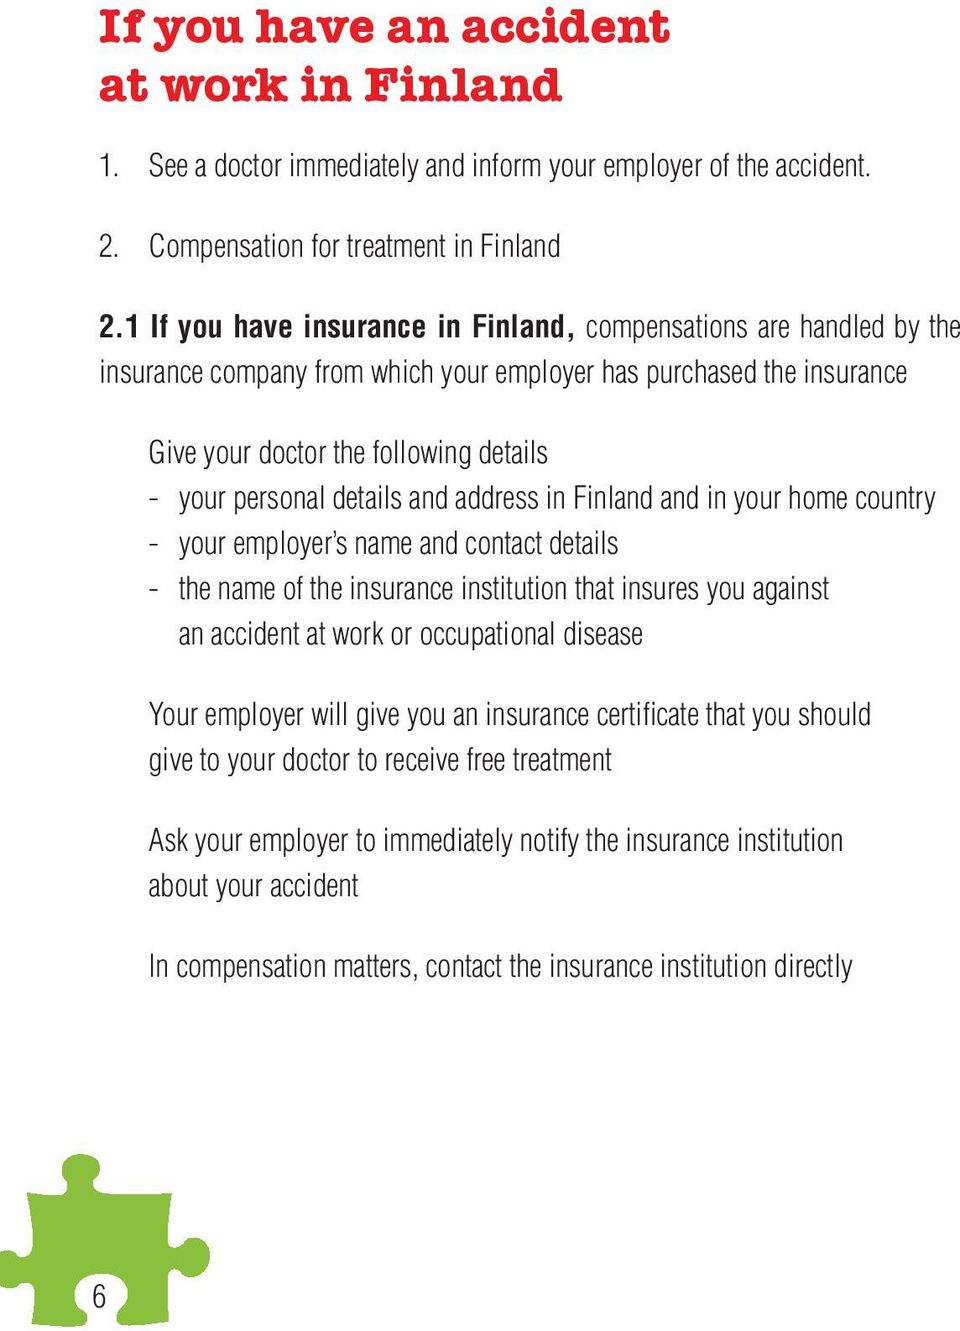 details and address in Finland and in your home country - your employer s name and contact details - the name of the insurance institution that insures you against an accident at work or occupational